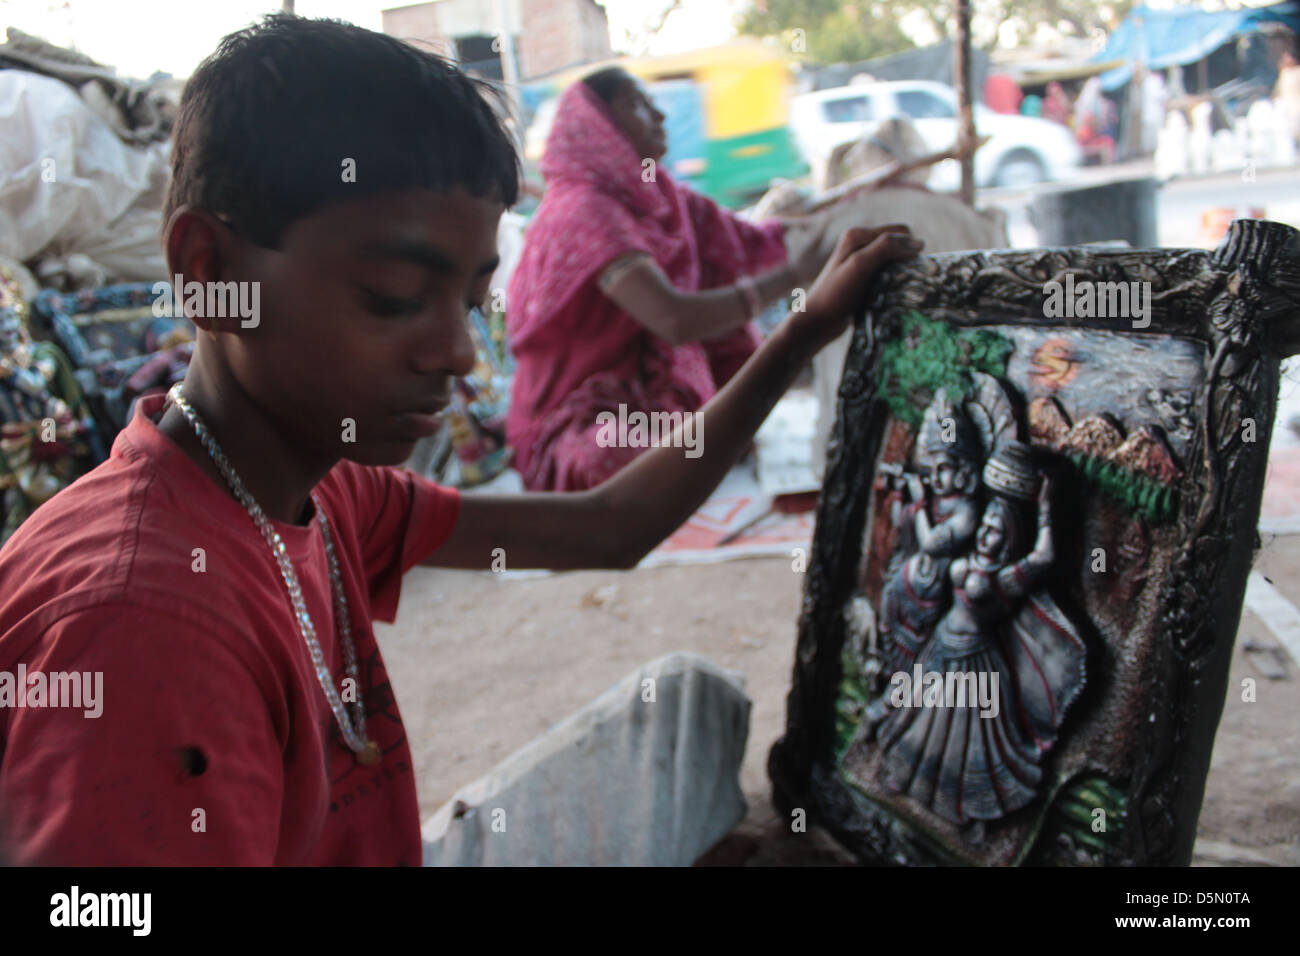 An Indian family works on completing Hindu idols in the Gulbai Tekra locality of Ahmedabad, Gujarat, India. - Stock Image